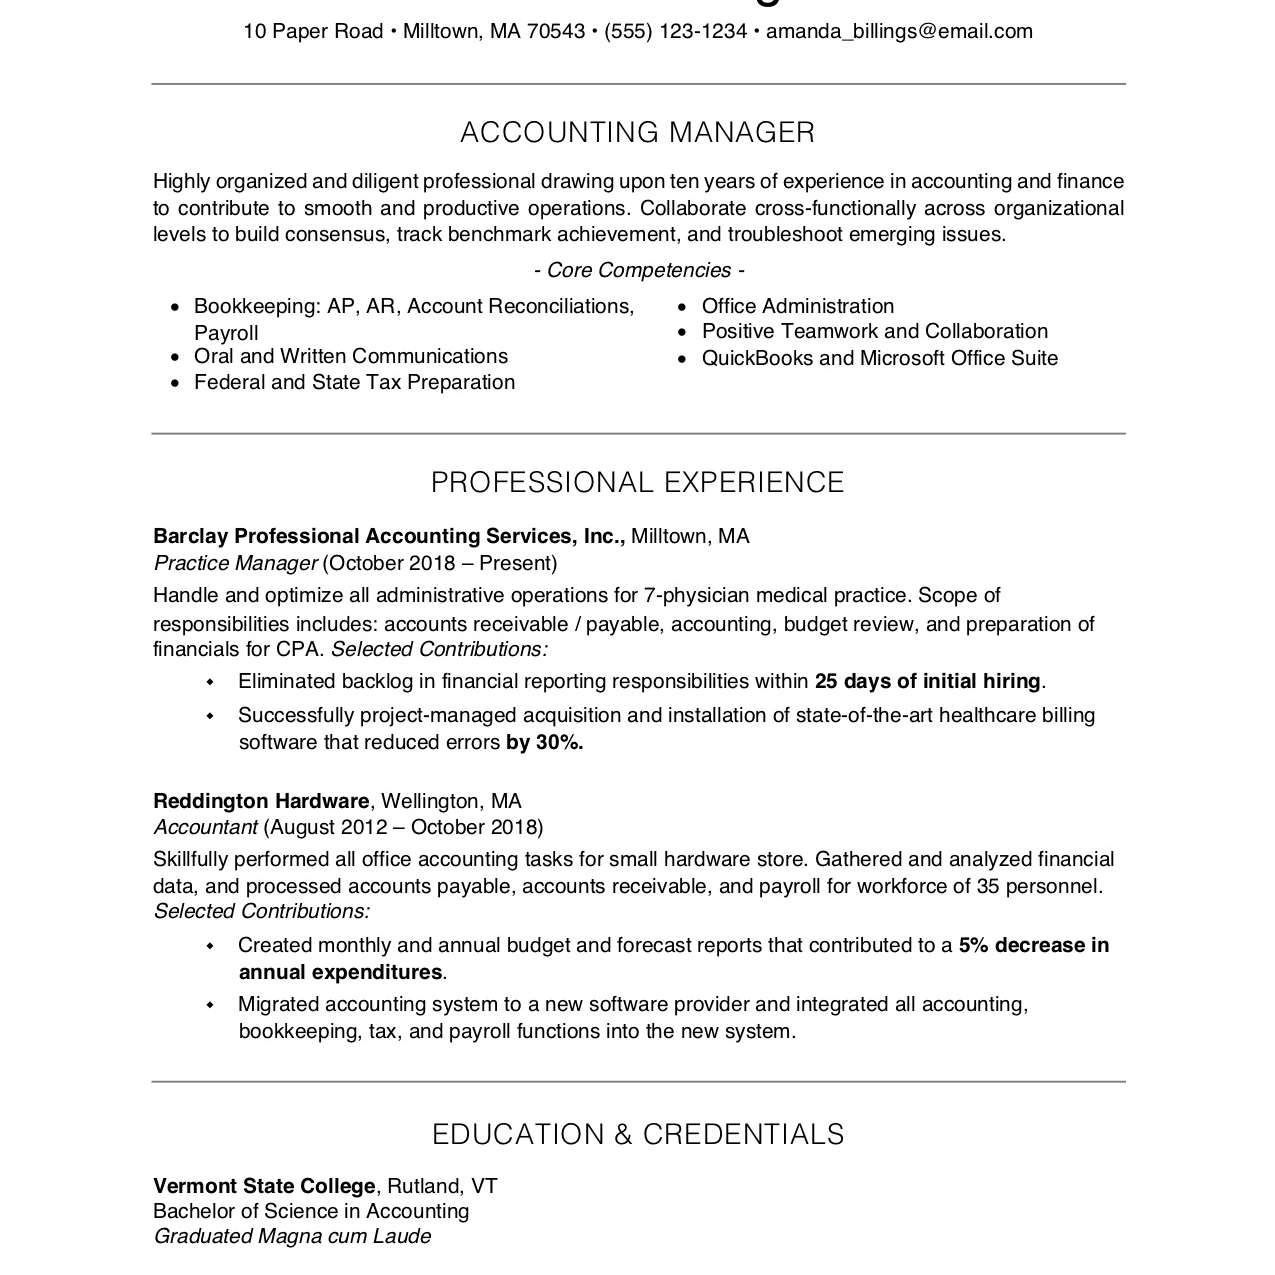 free professional resume examples and writing tips job templates 2063596res1 objective Resume Free Job Resume Templates